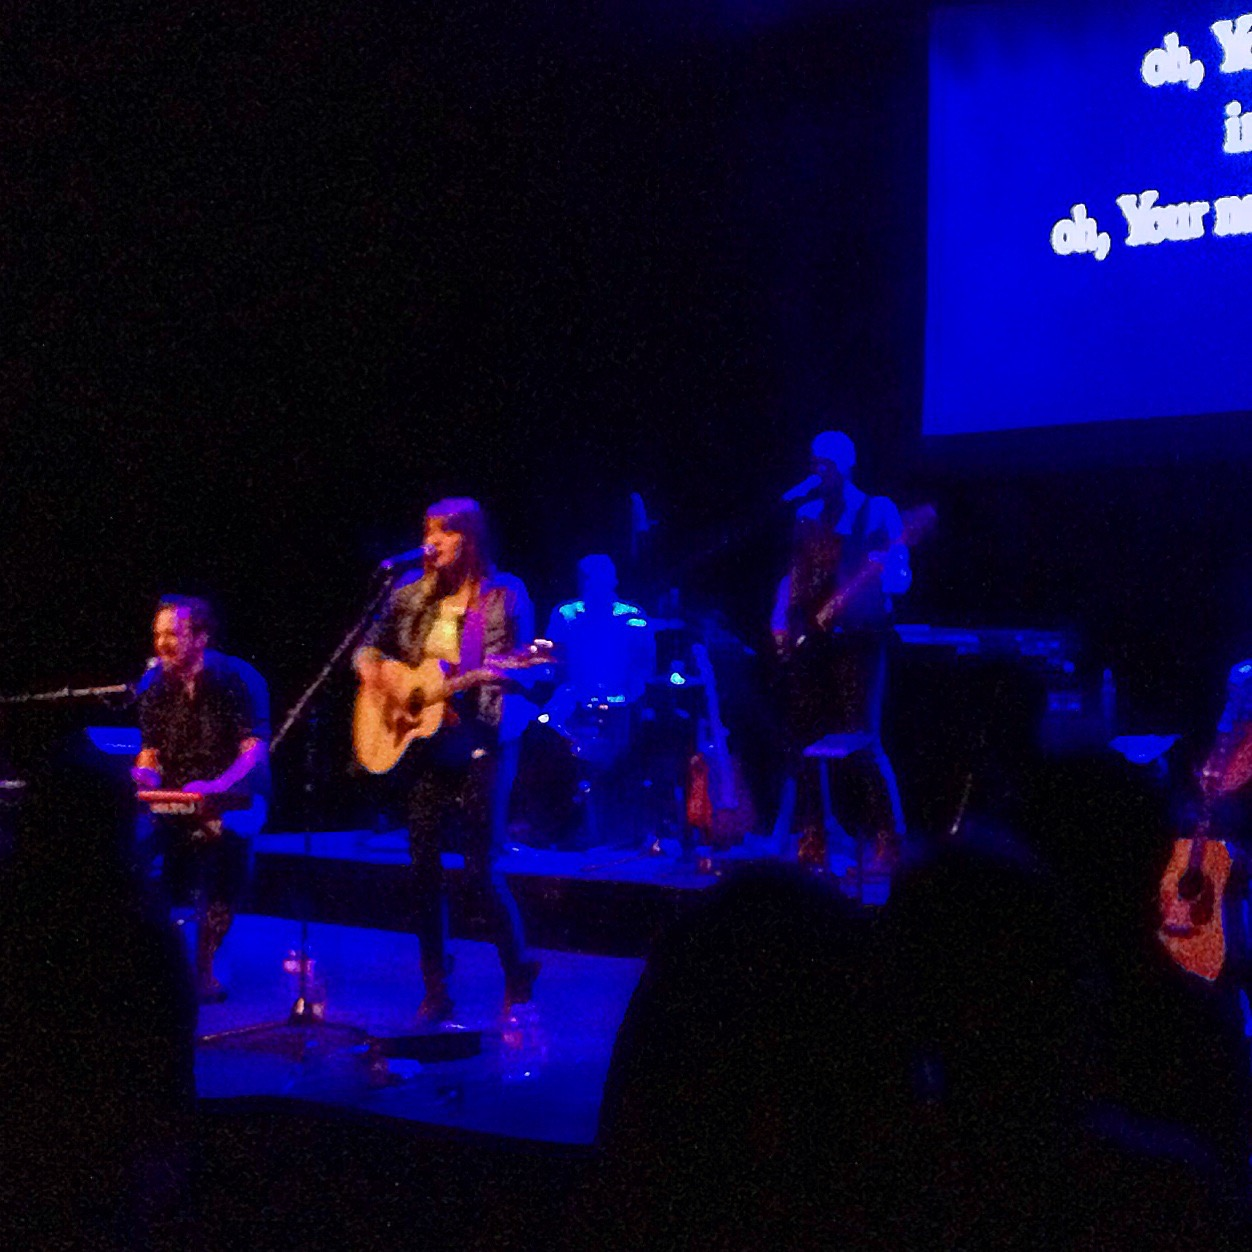 David & Leslie of All Sons & Daughters expanding our vocabulary for Worship at an Evening of Worship here in San Diego.